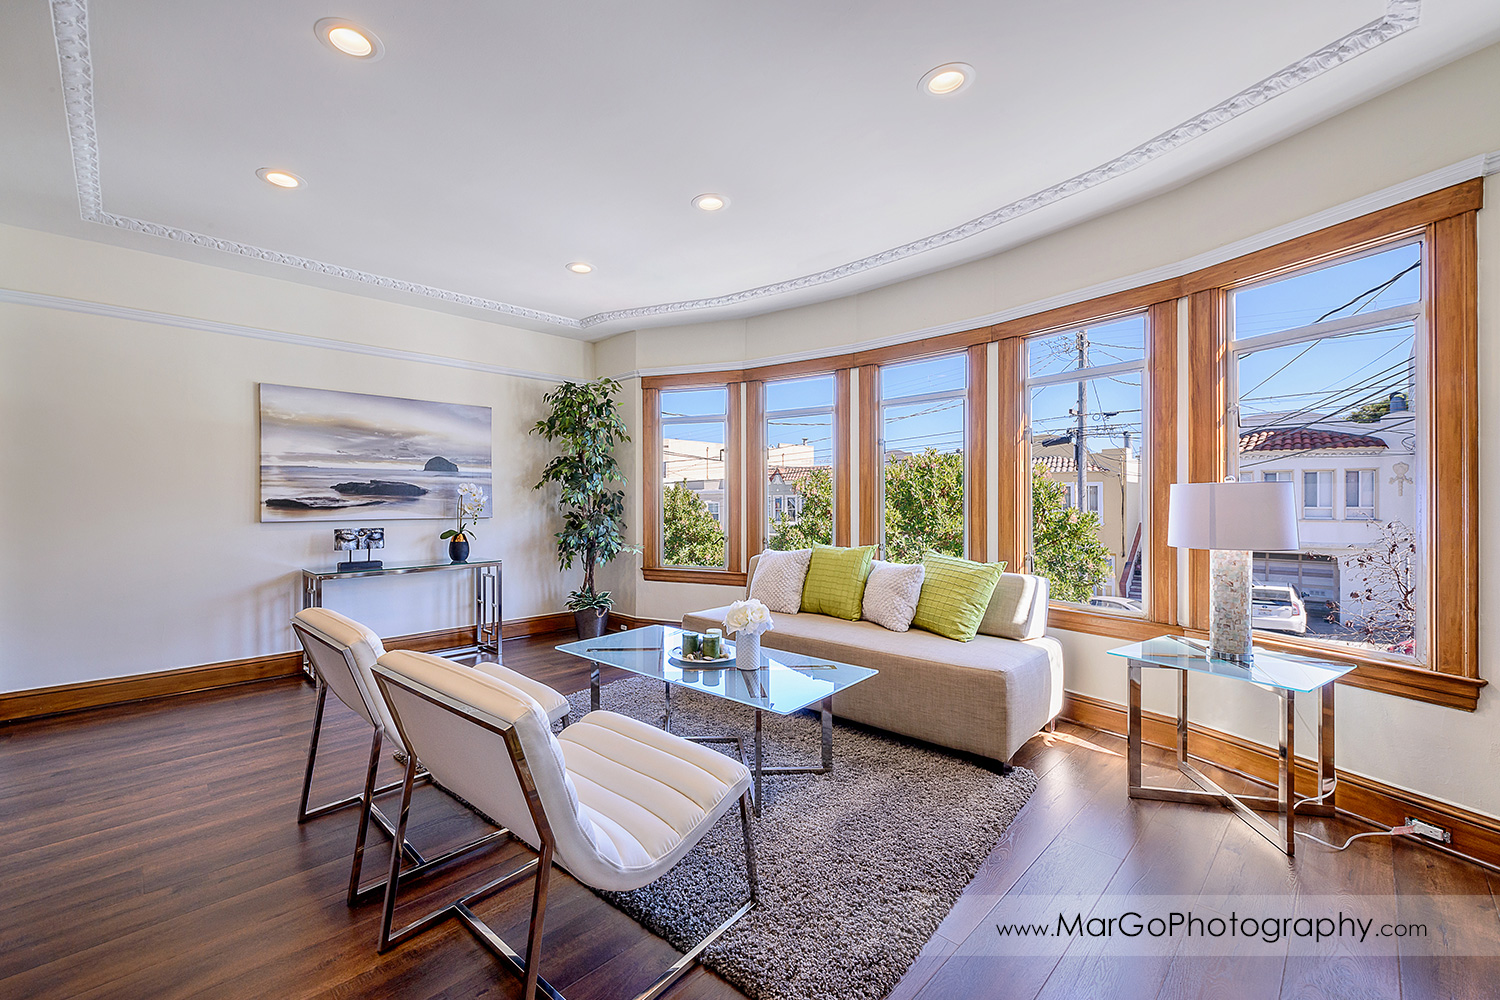 San Francisco house living room with panoramic windows - real estate photography